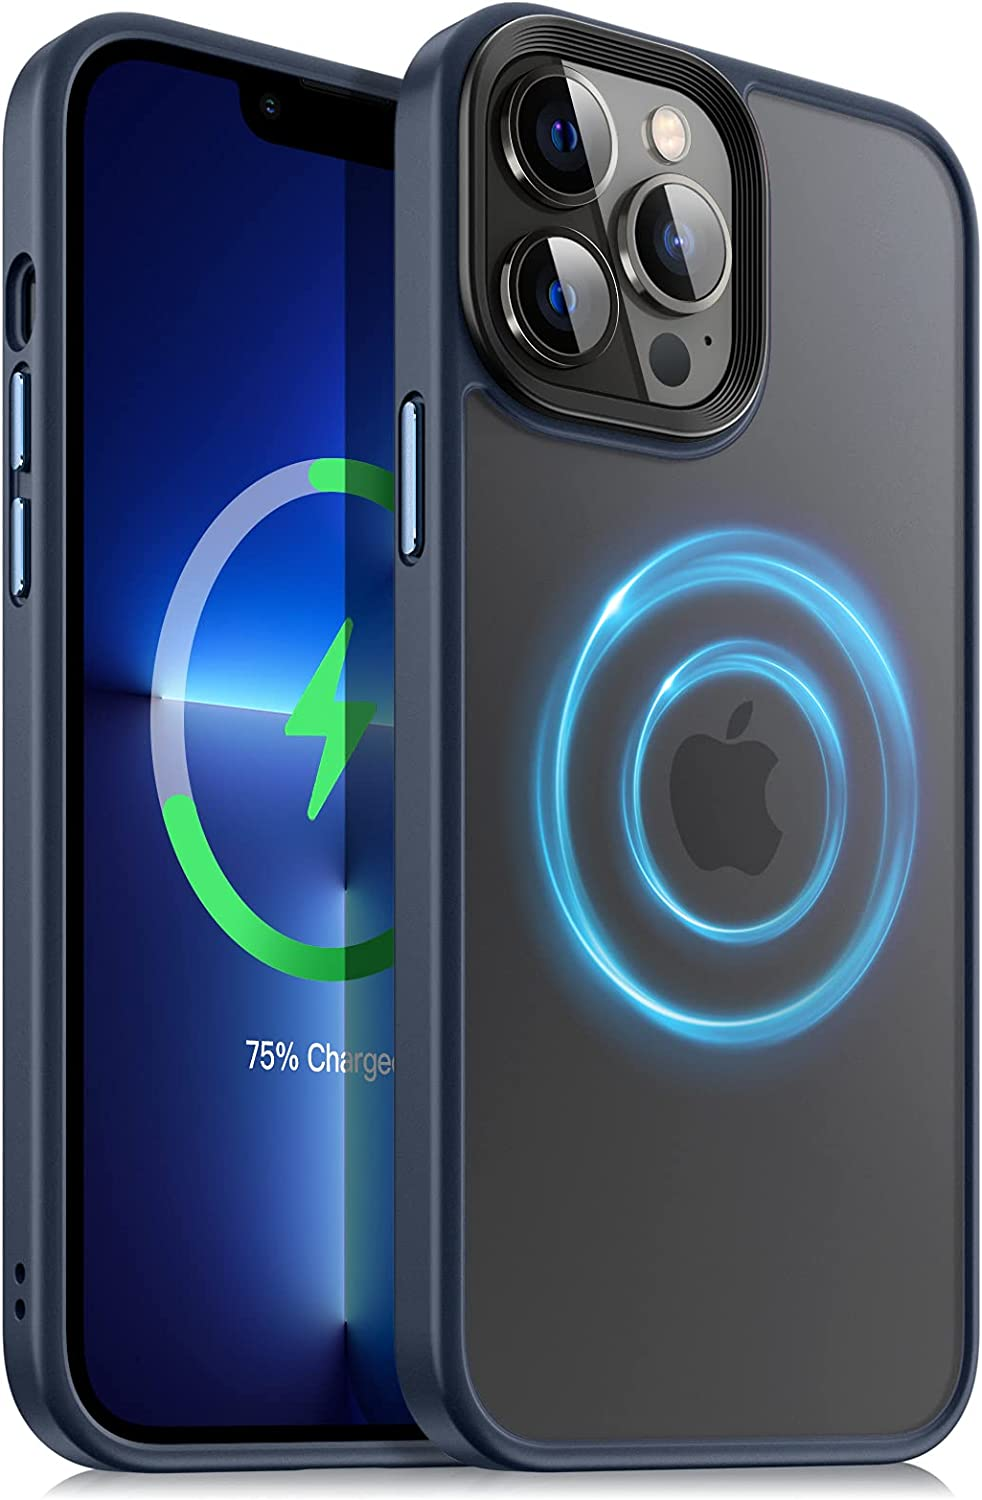 Dadanism Designed for iPhone 13 Pro Max Case, [Military Grade Drop Protection] Shockproof Translucent Slim Clear Case for iPhone 13 Pro Max 6.7 inch 2021, Indigo